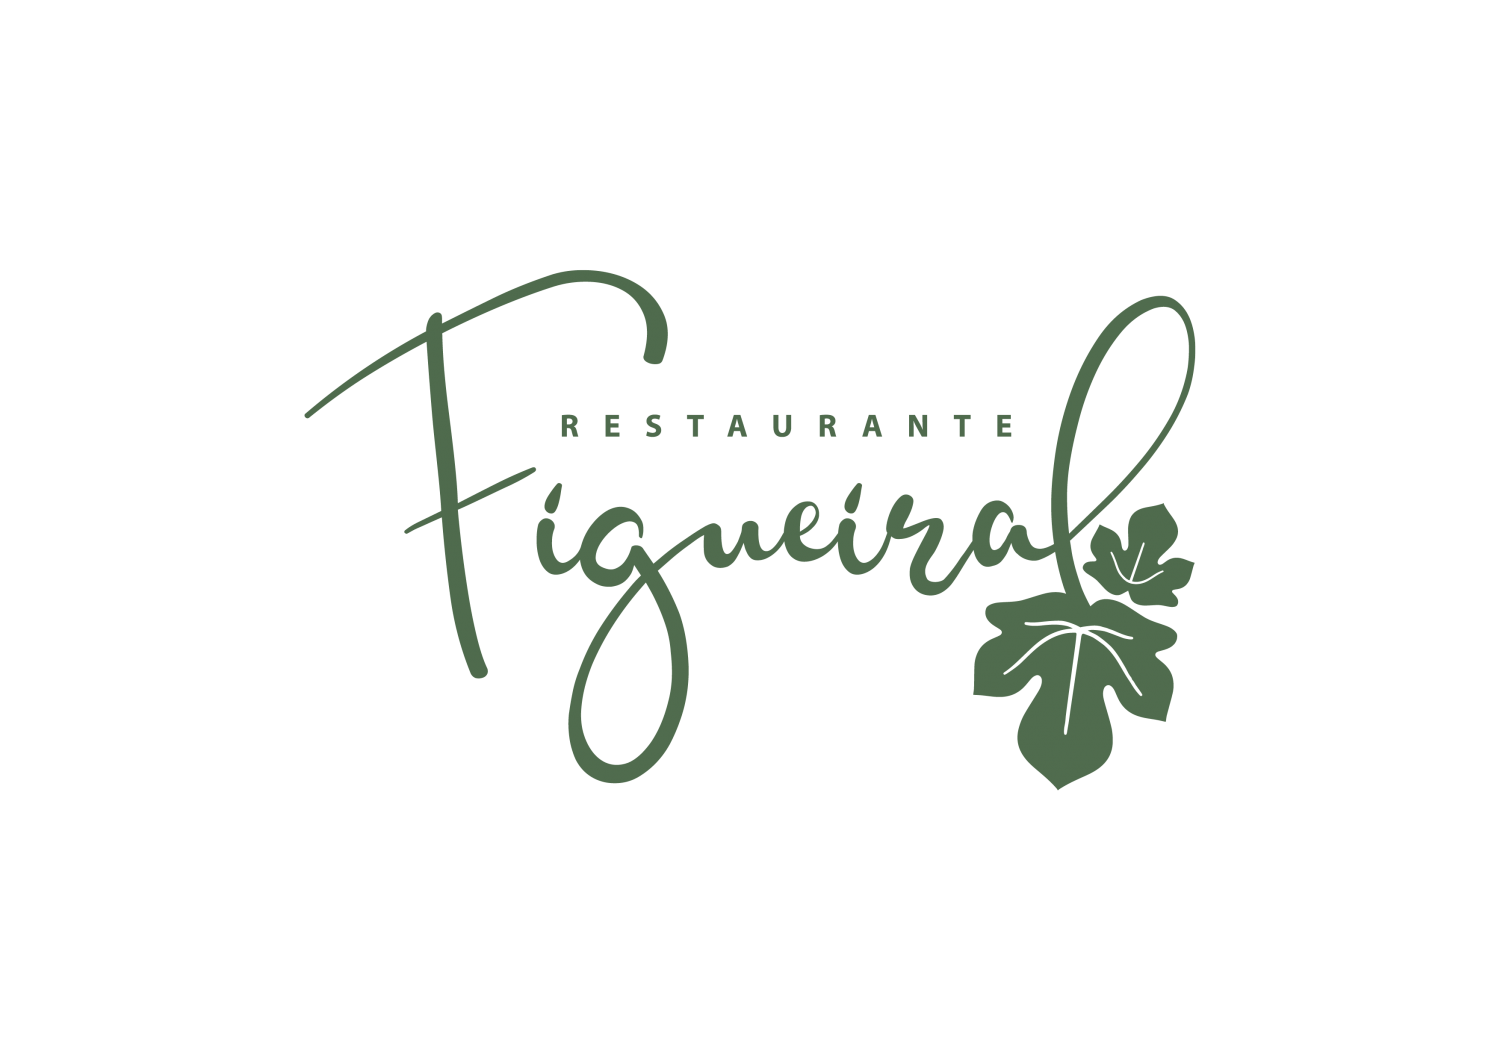 Restaurante Figueiral do logo